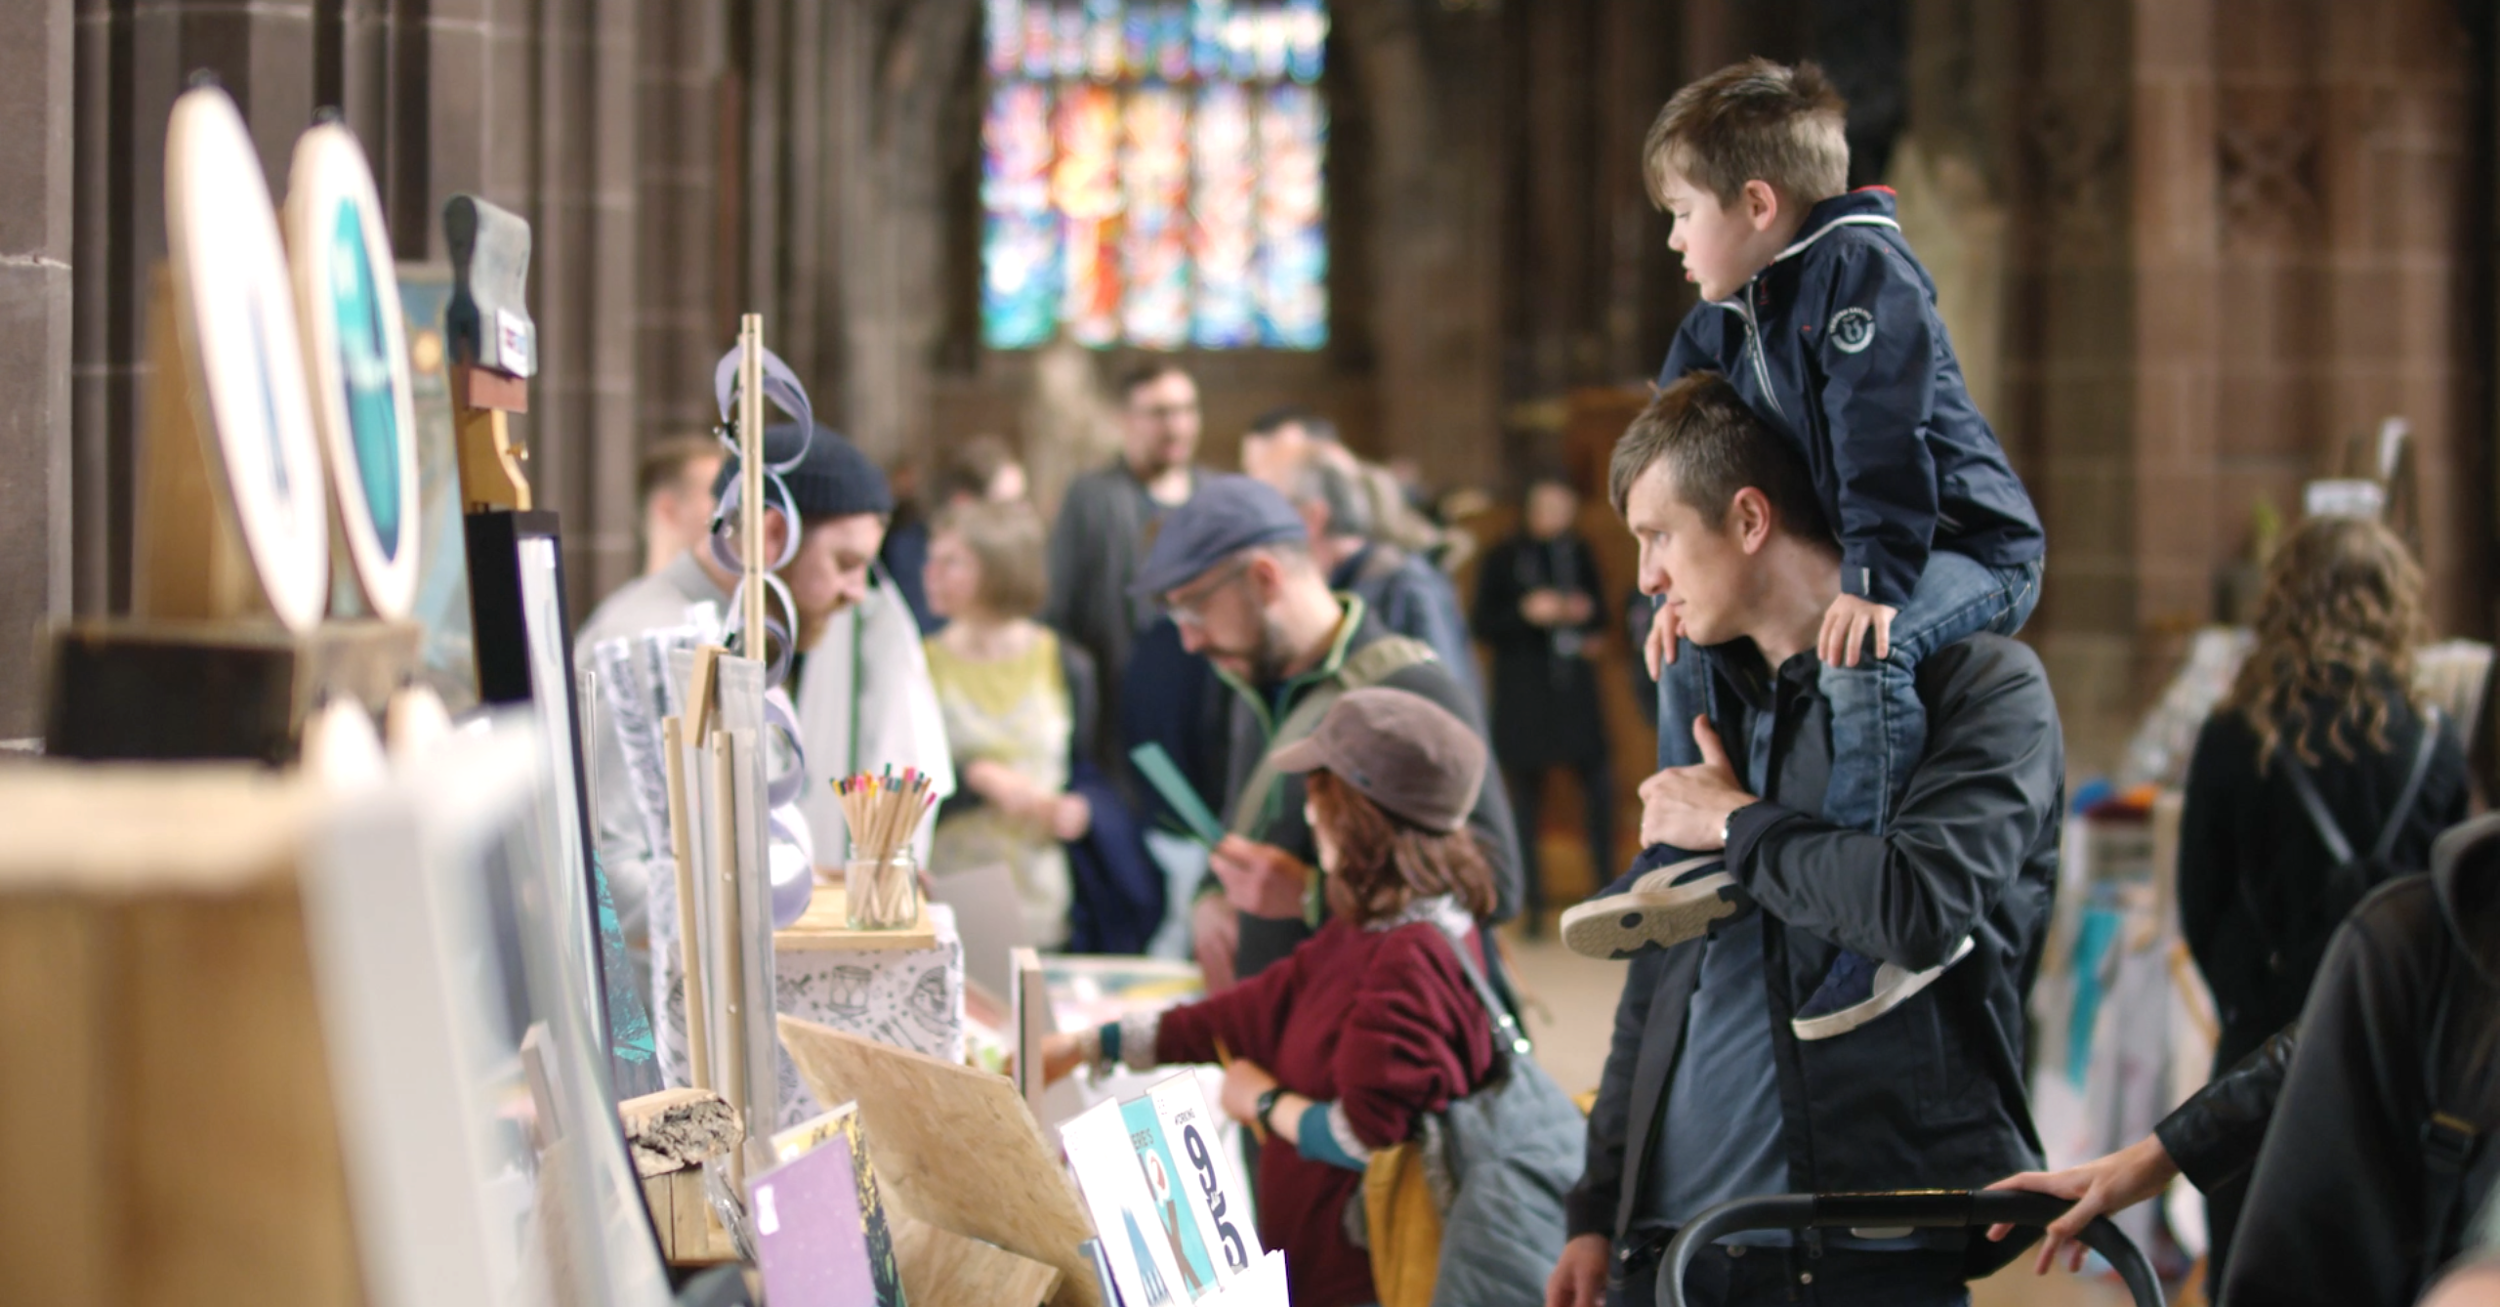 Manchester Print Fair at Manchester Cathedral, April 2018 by We Are Invite